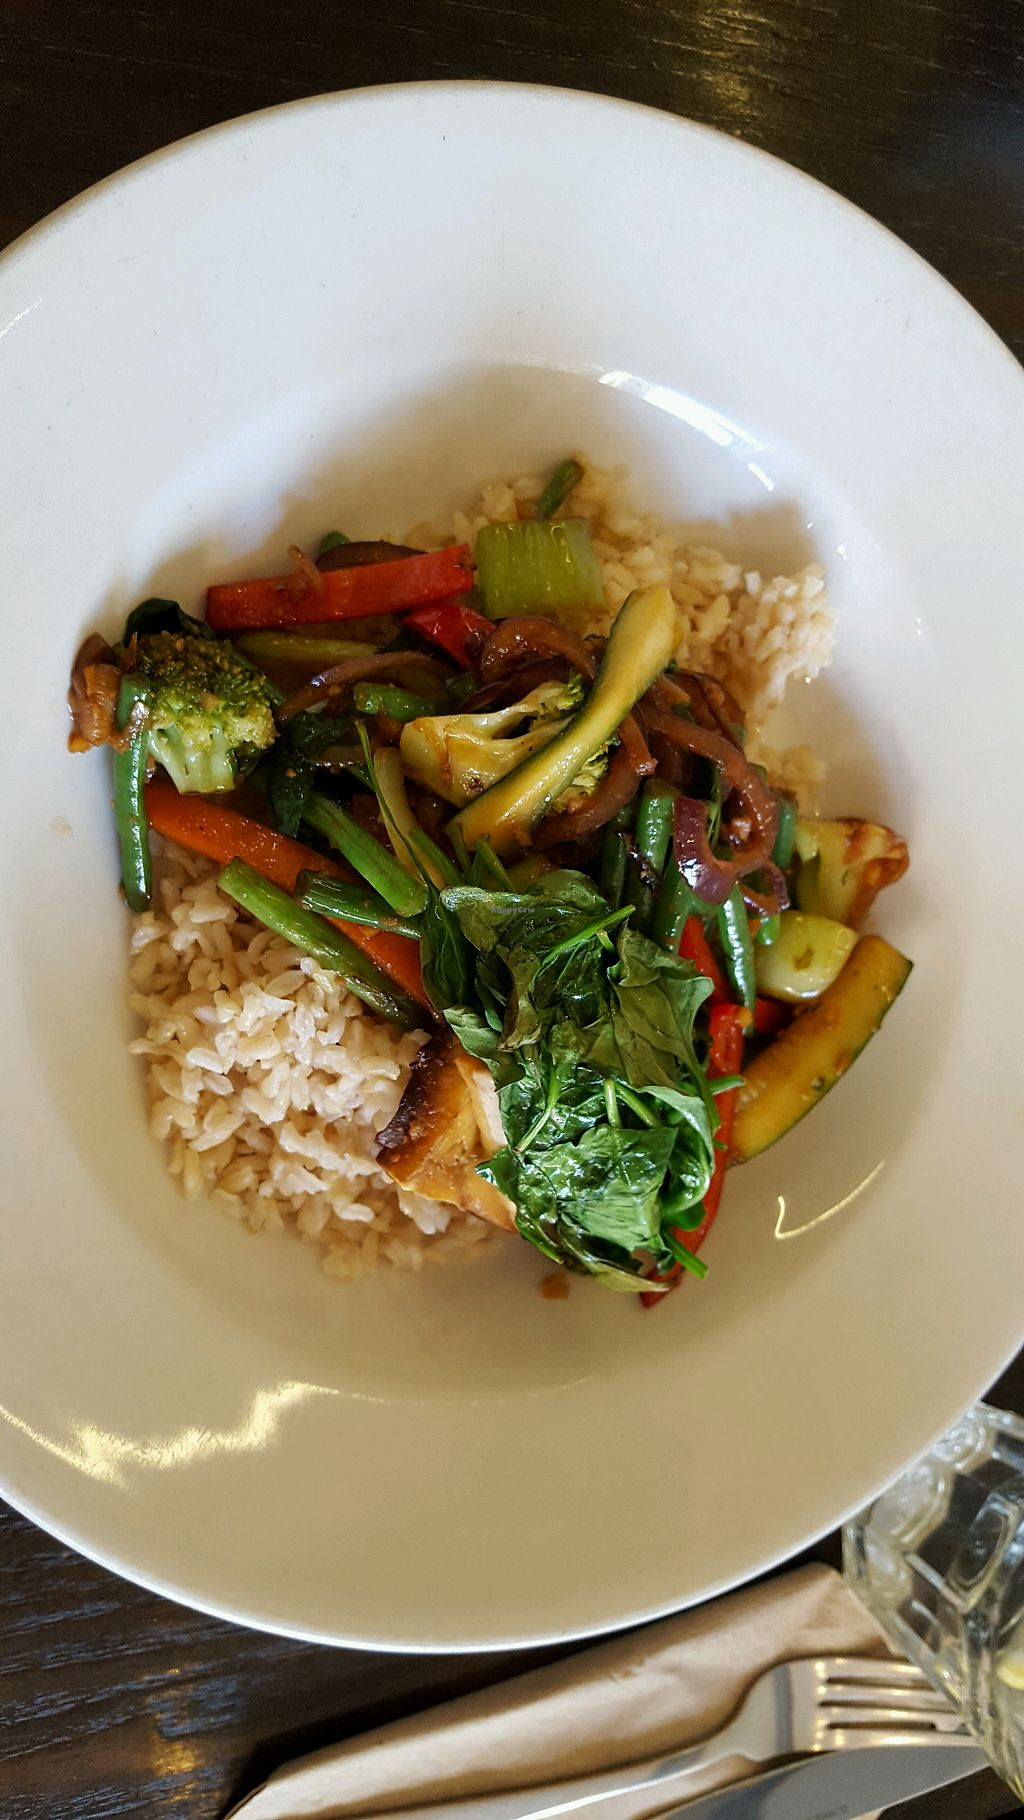 "Photo of 222 Vegan Cuisine  by <a href=""/members/profile/daria81"">daria81</a> <br/>ben's special with tofu and brown rice <br/> May 18, 2018  - <a href='/contact/abuse/image/4655/401304'>Report</a>"